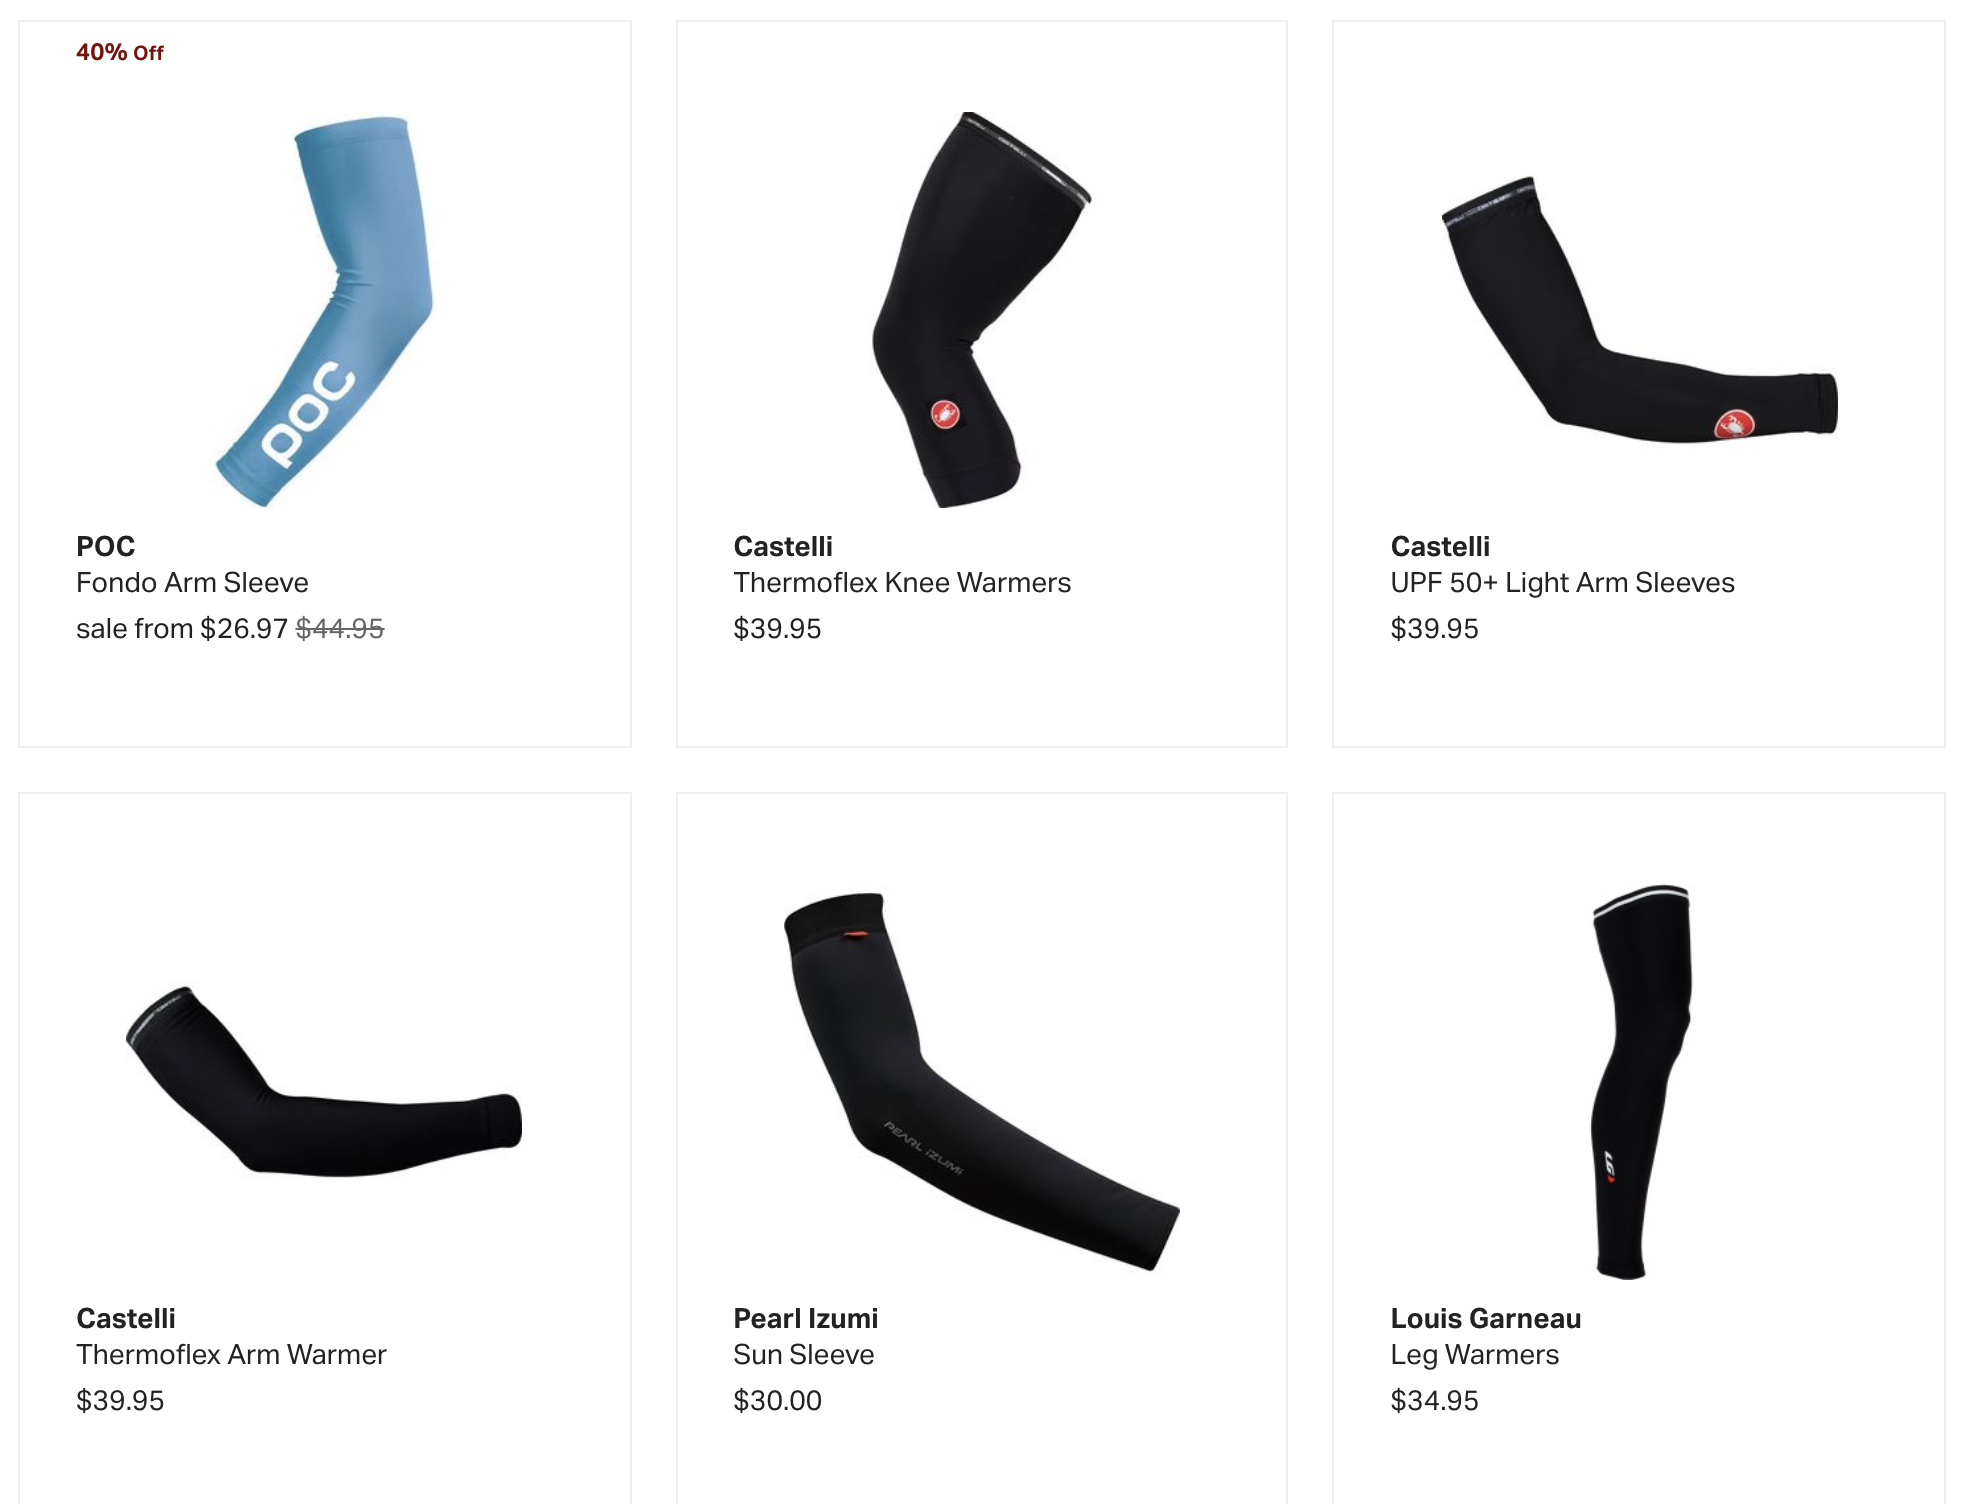 Buy Cycling Arm Warmers at Backcountry.com